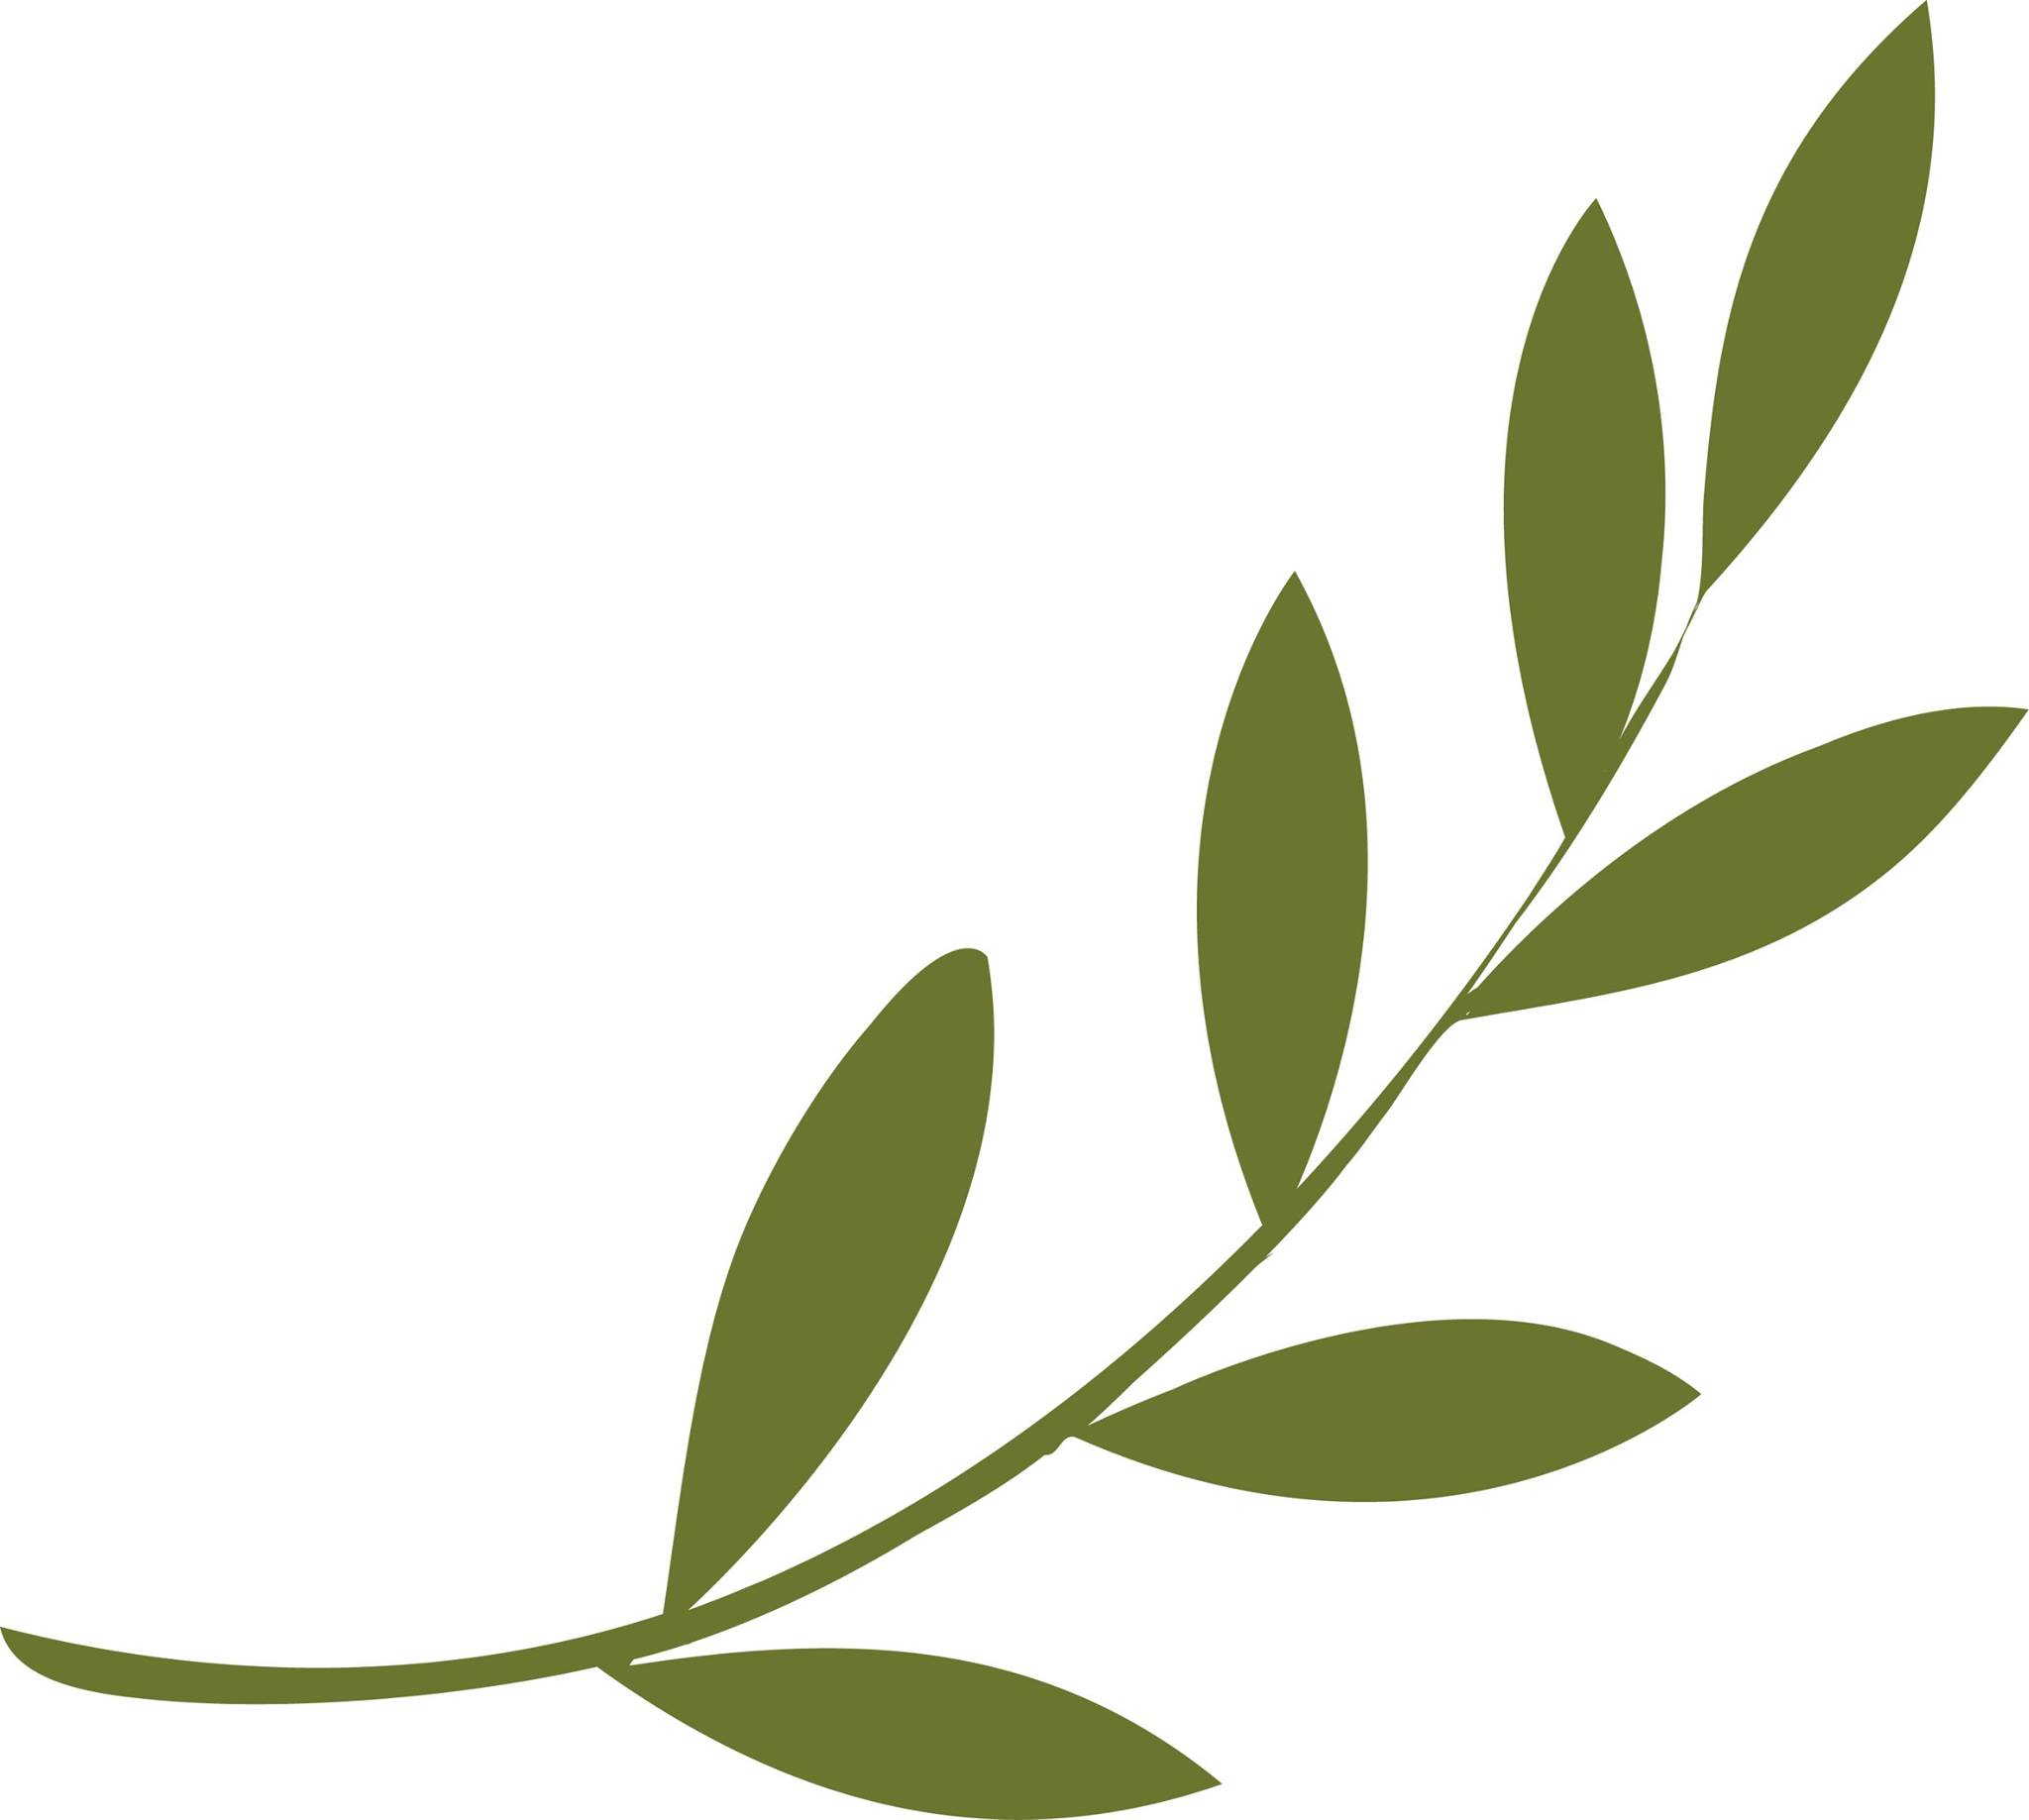 the proverbial olive branch occupy m e olive branch clipart borders olive branch clipart vector